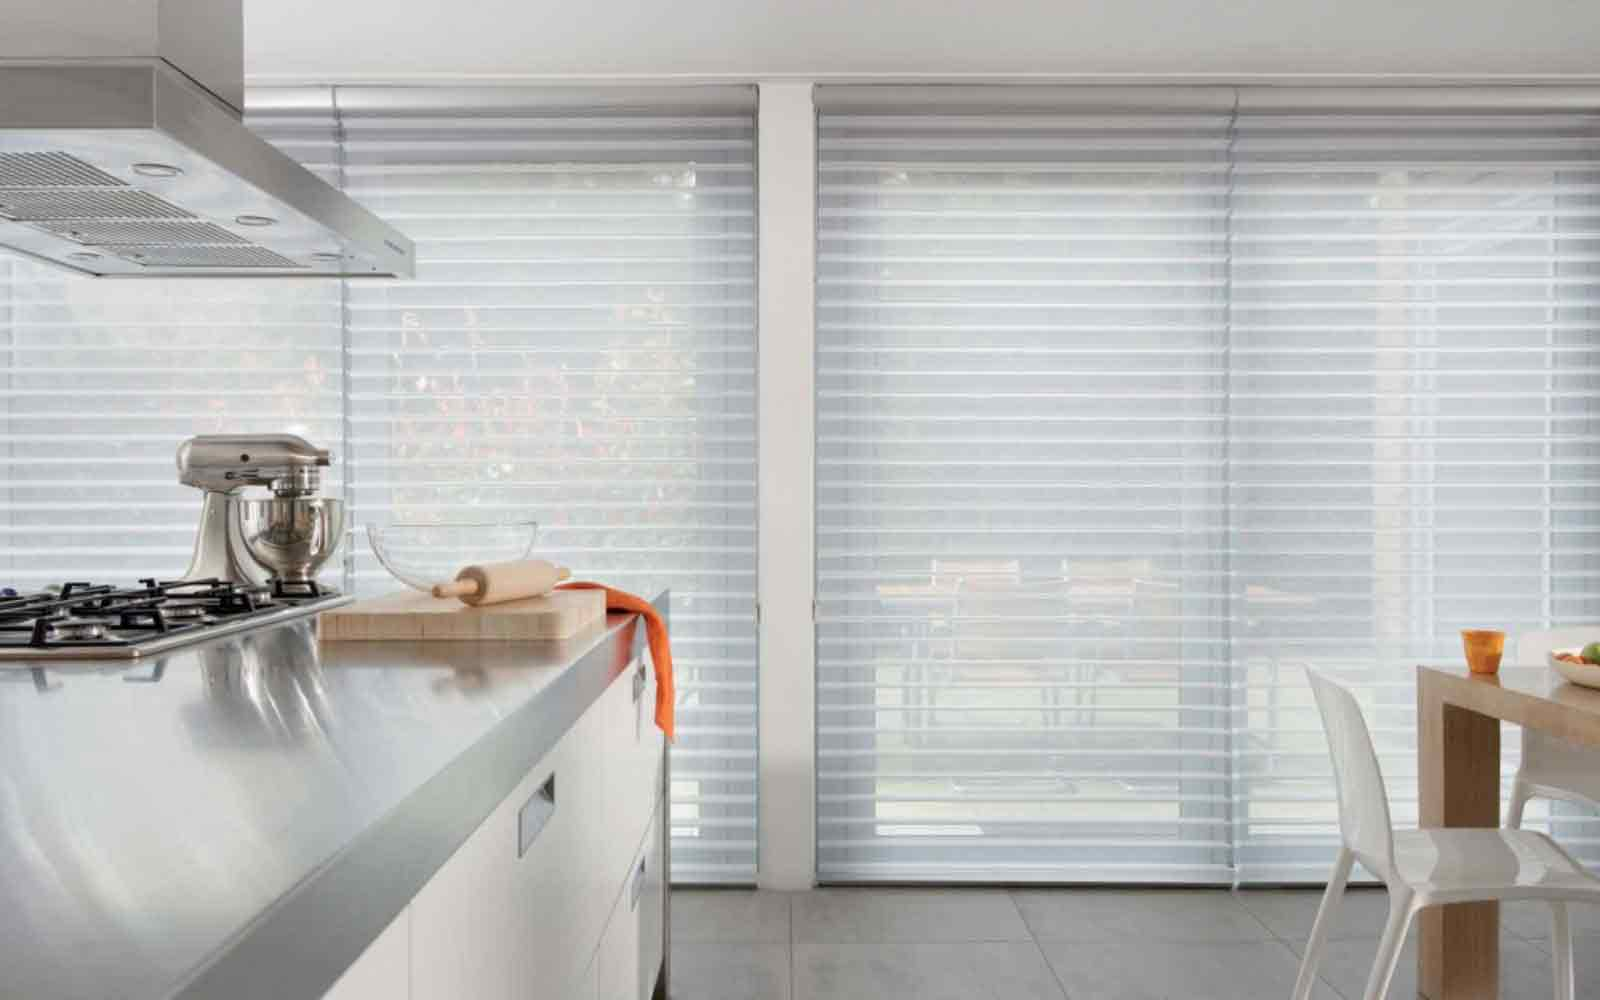 Facetted blinds in a kitchen